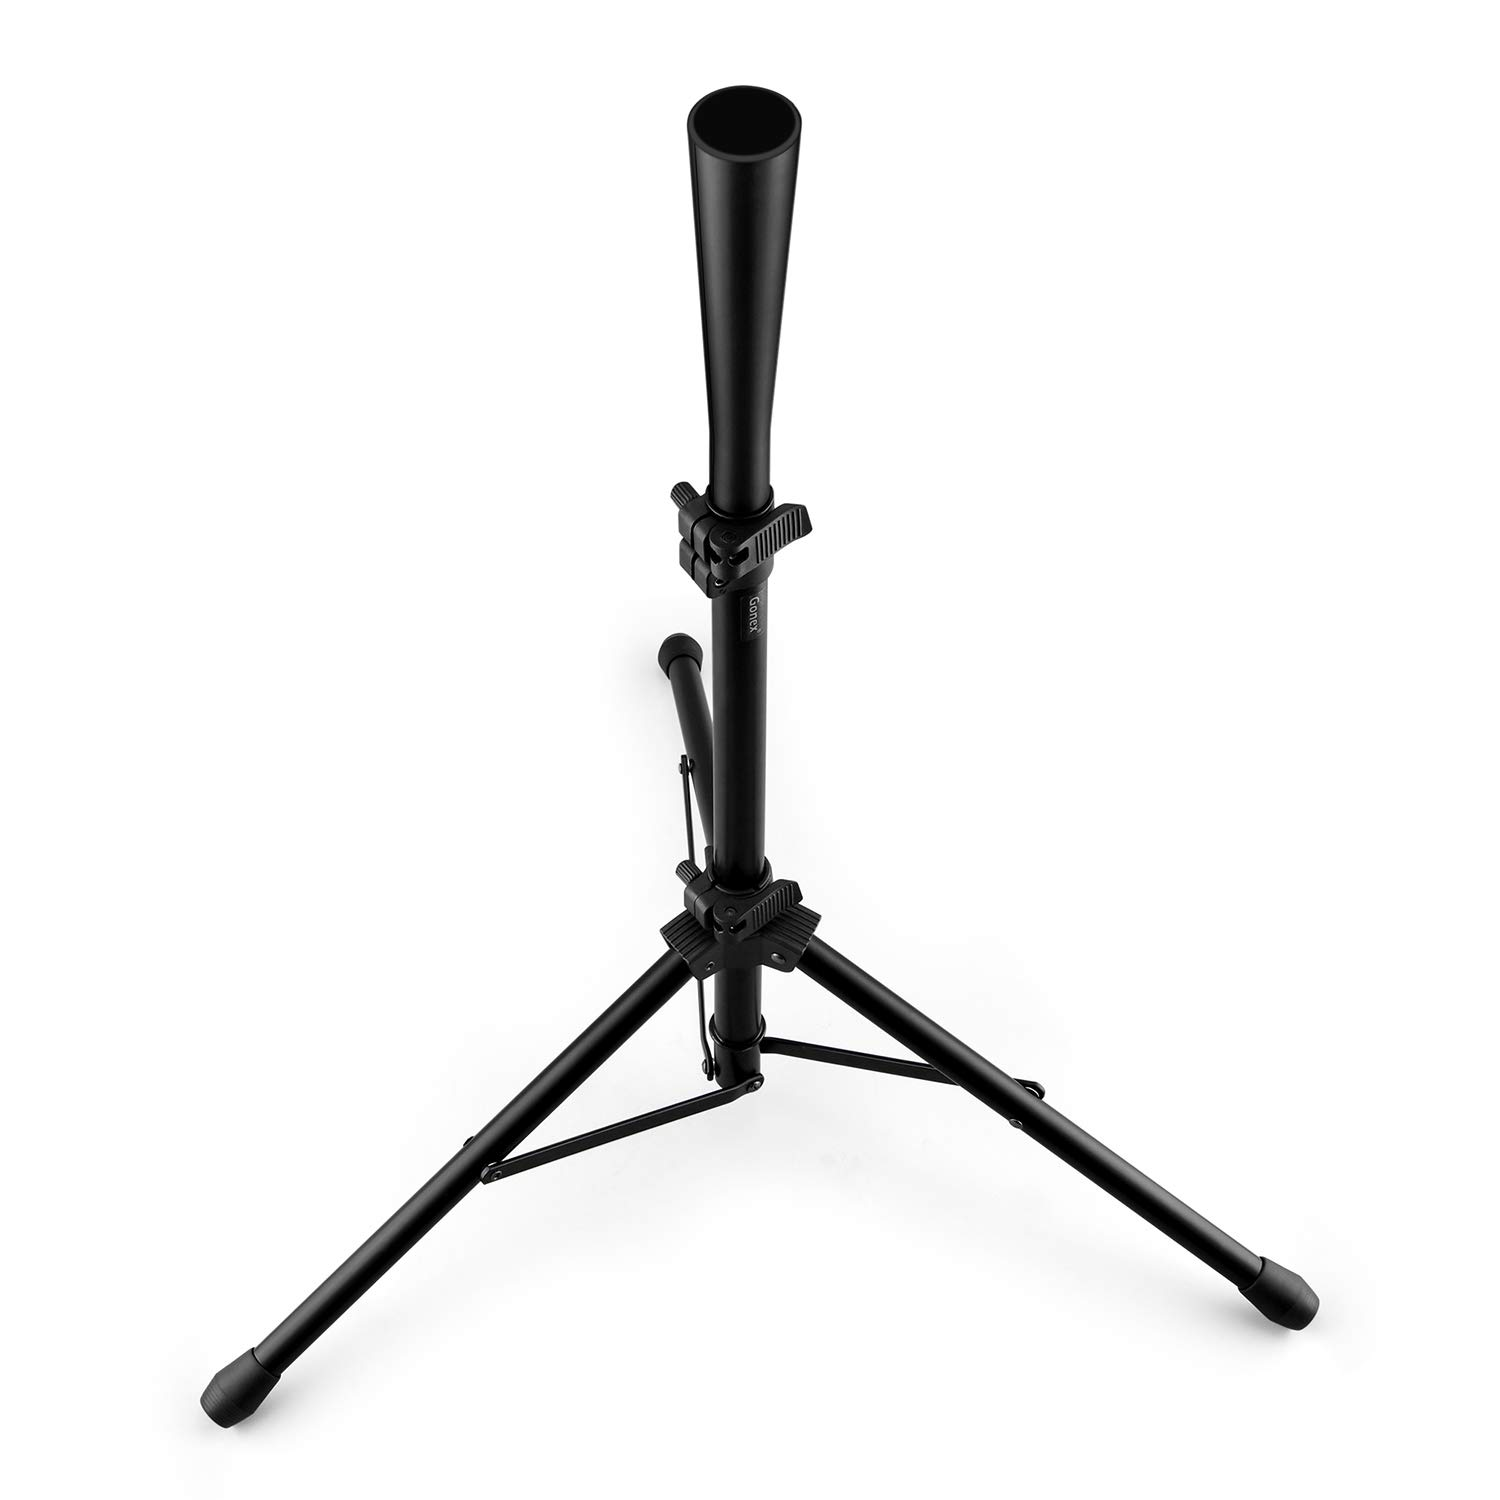 Gonex Baseball Batting Tee Travel Tee Tripod for Baseball Practice Training Aid, Youth & Adult Hitting Tee for Softball, Collapsible Portable, with Carrying Bag, Adjustable 27-44'', Black by Gonex